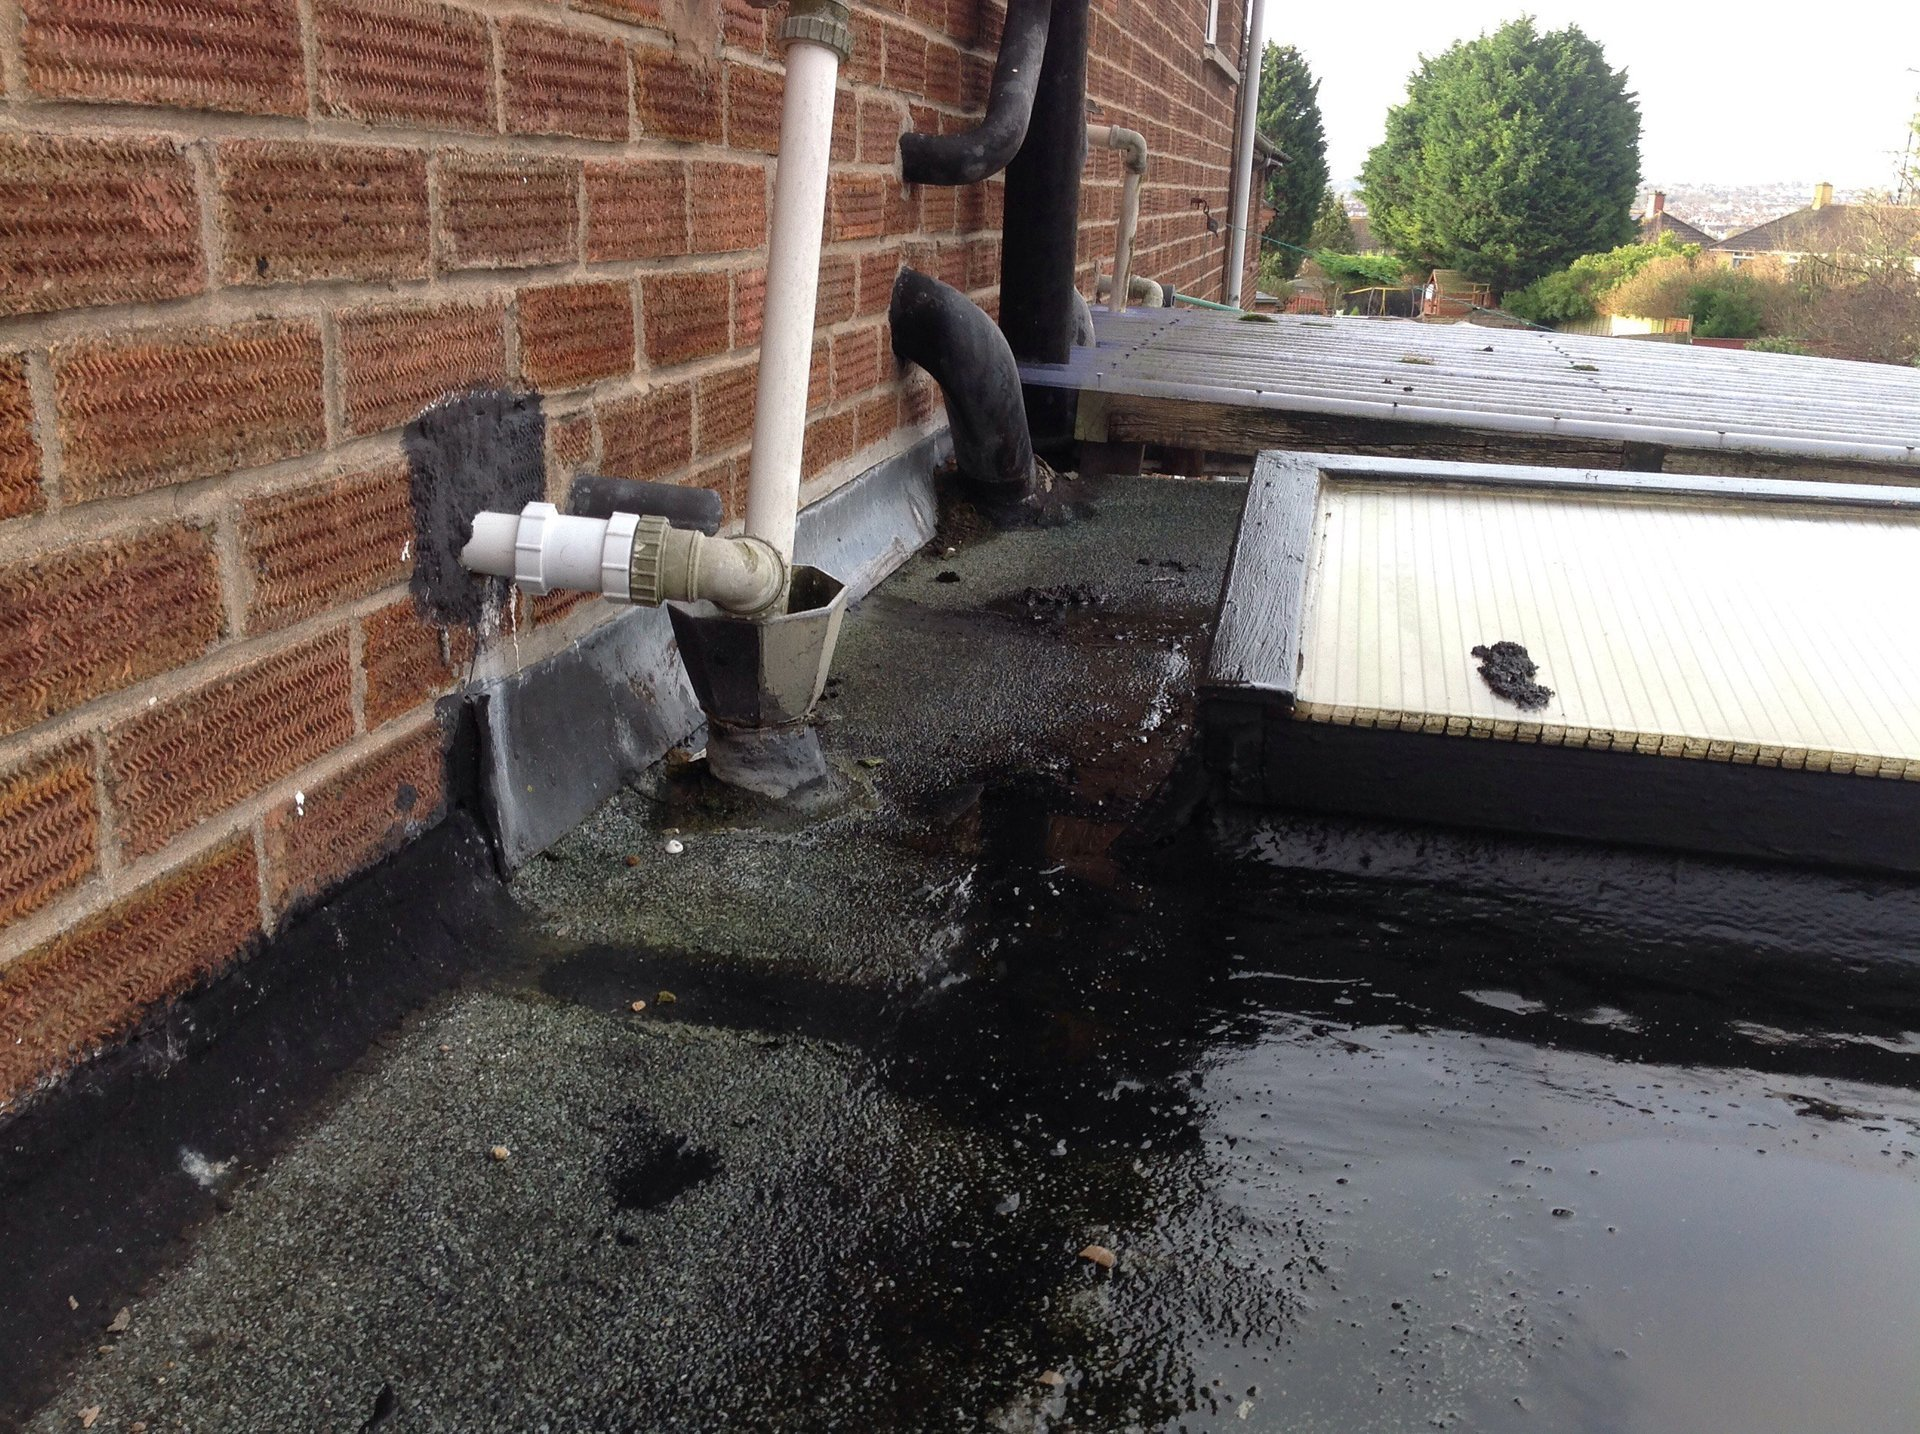 Flat Roof Replacement By Grp Flat Roof Specialists In Cardiff